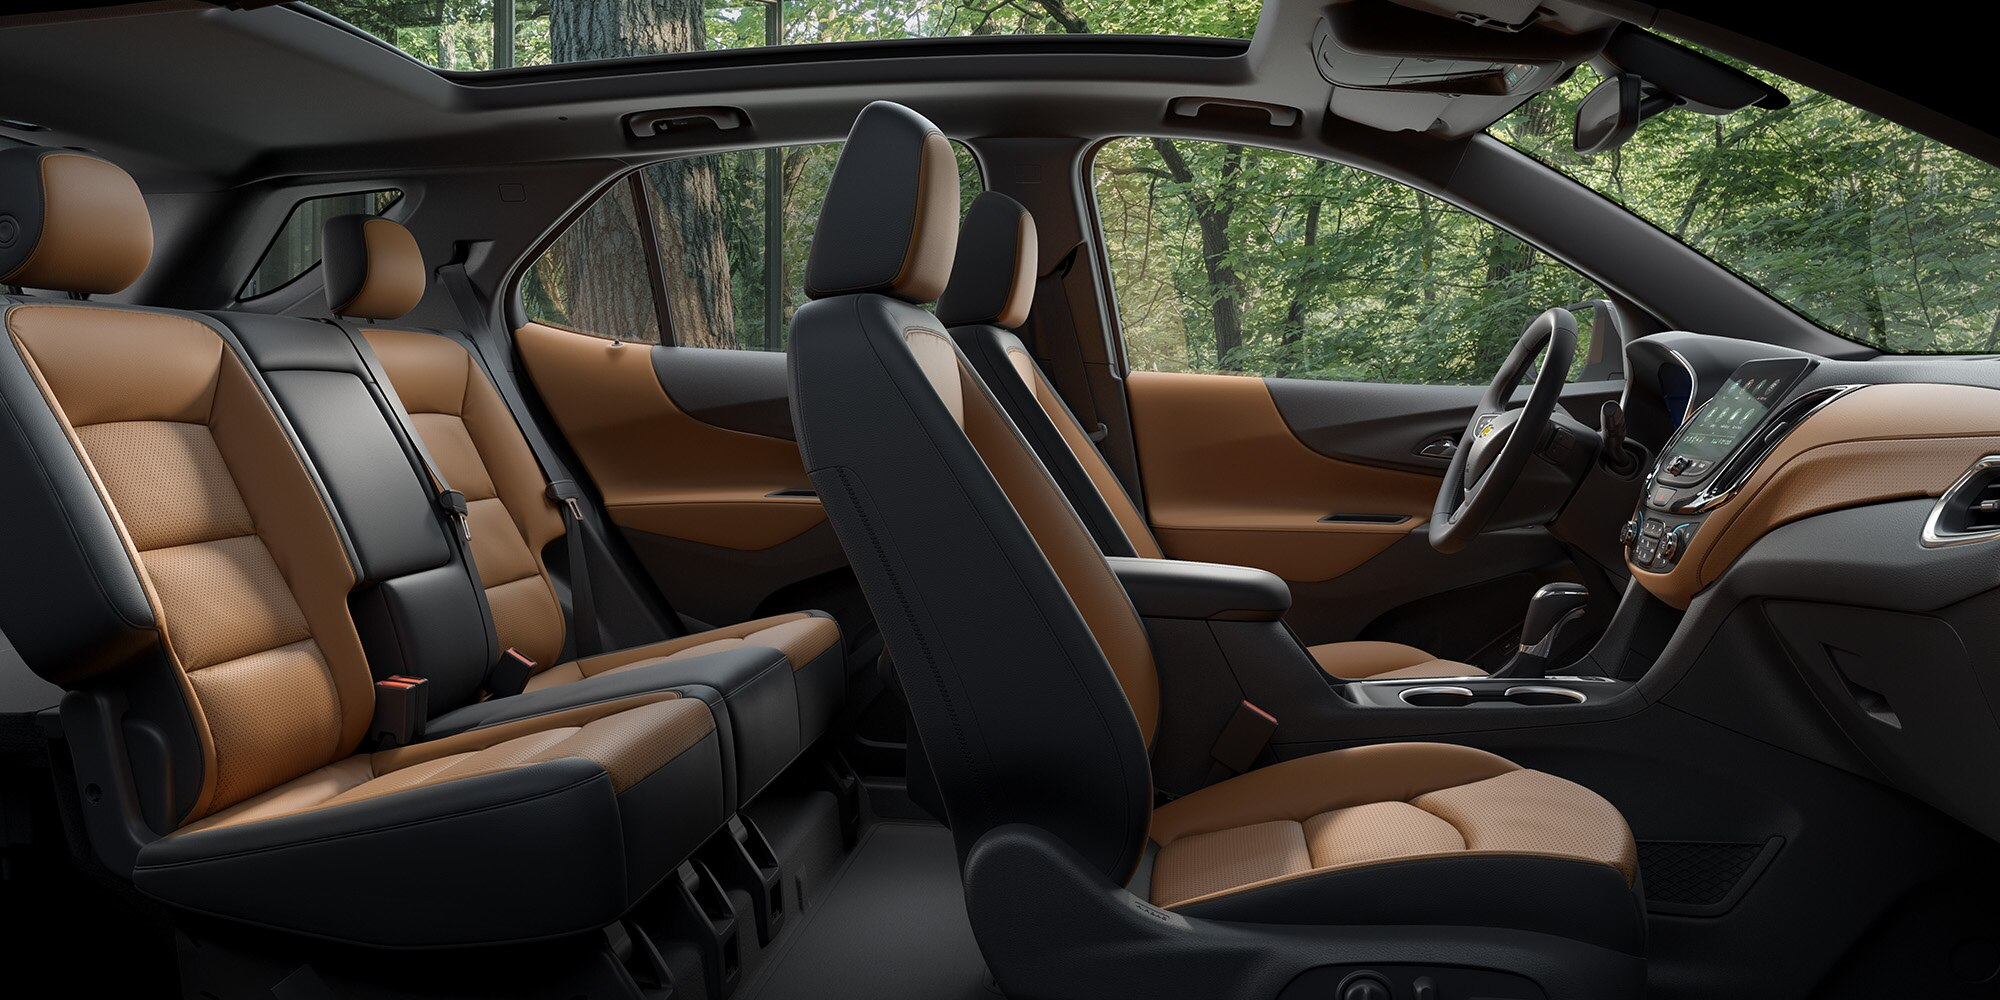 2020 Equinox Full Interior